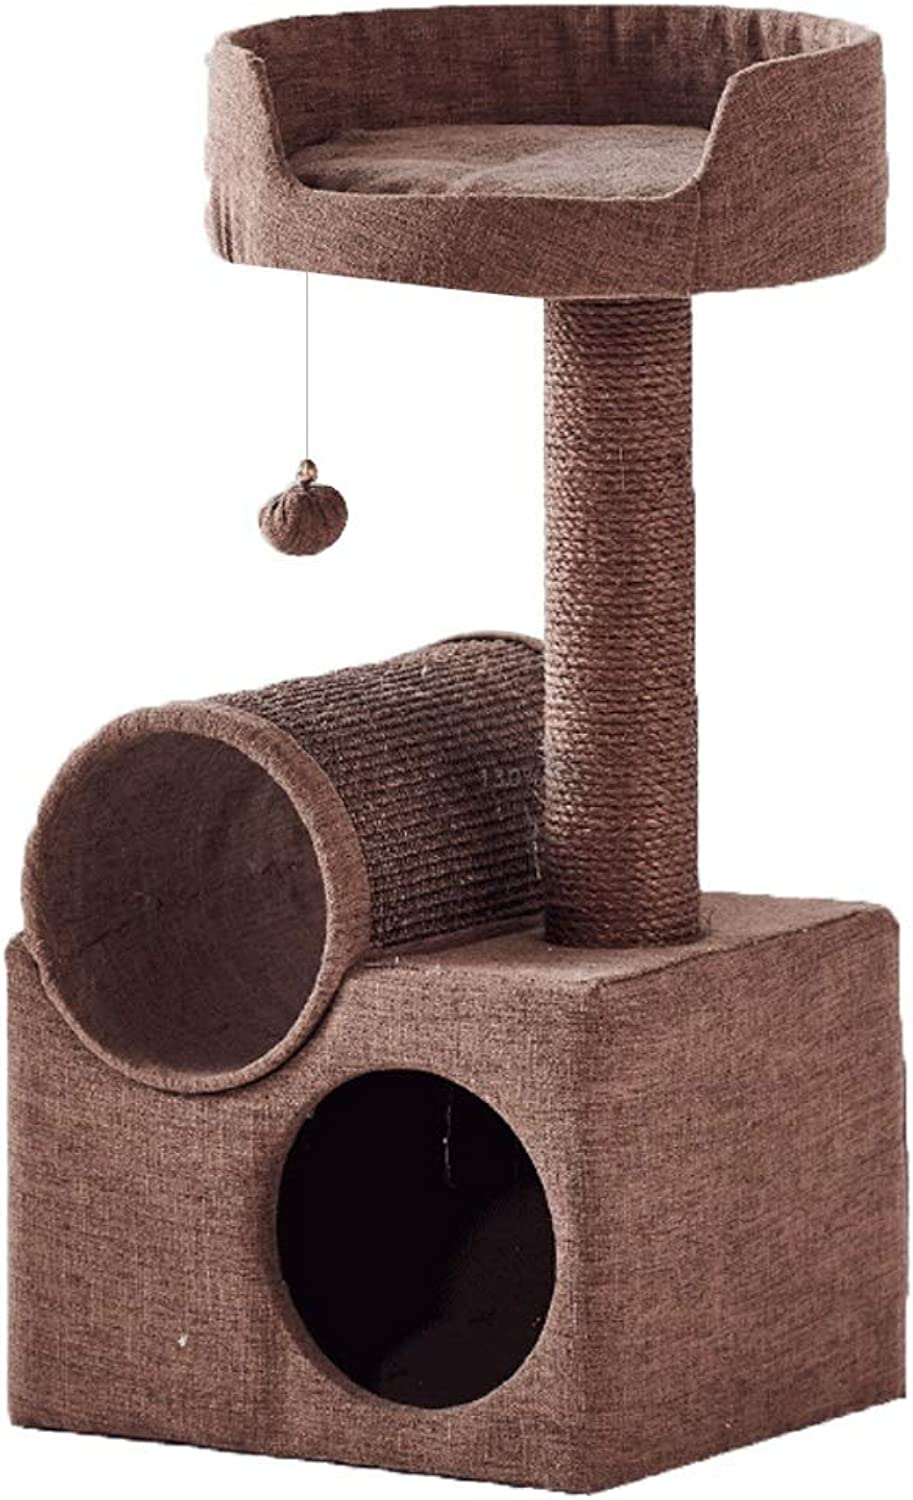 RKY Cat tree 2019 new summer and winter cat tree brown cat nest cat box one funny cat ball pet toy pet supplies